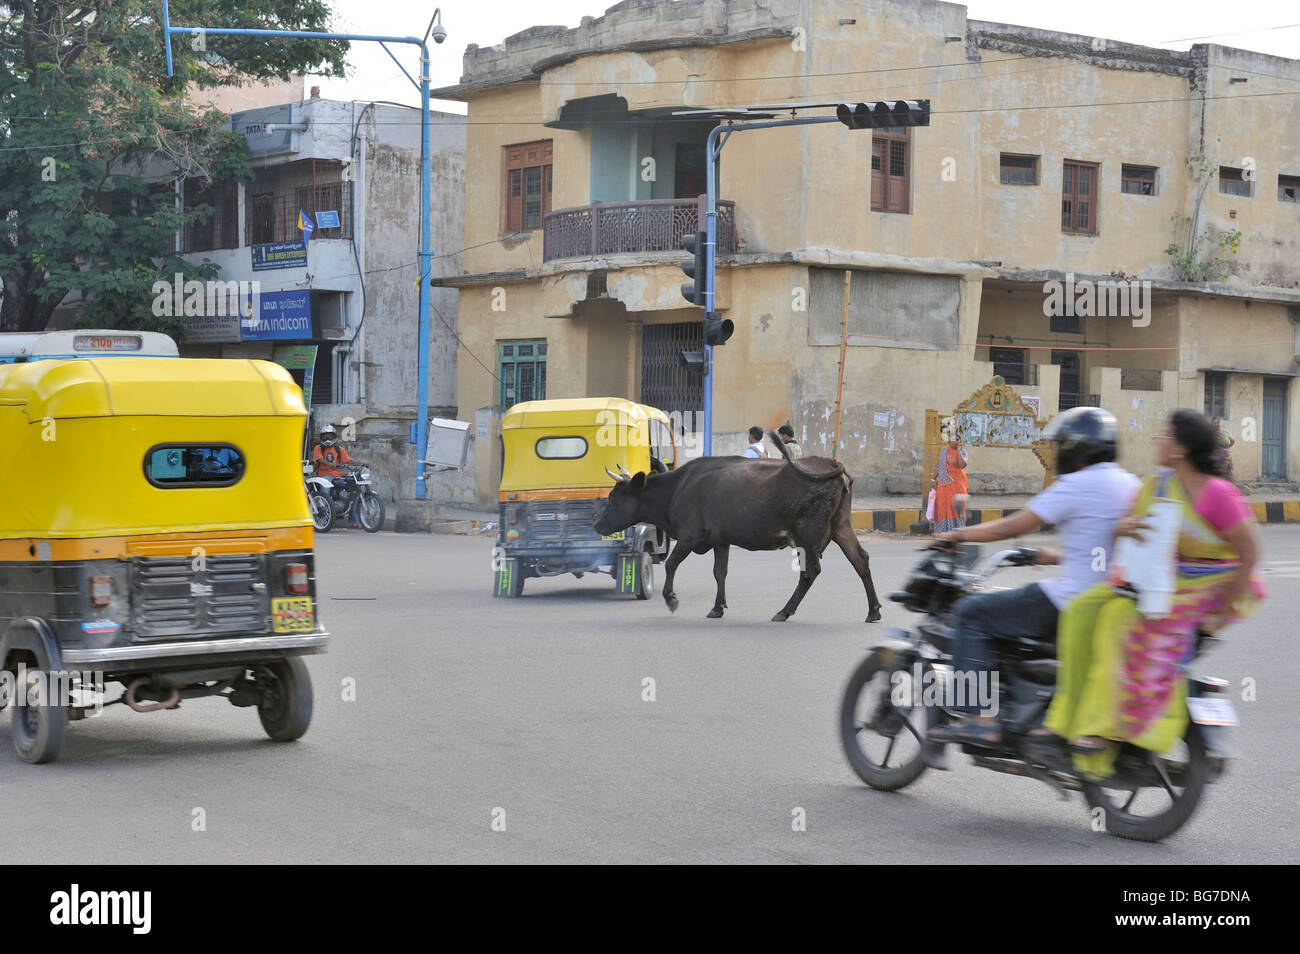 Traffic negotiating it's way around a cow roaming in the street - Stock Image